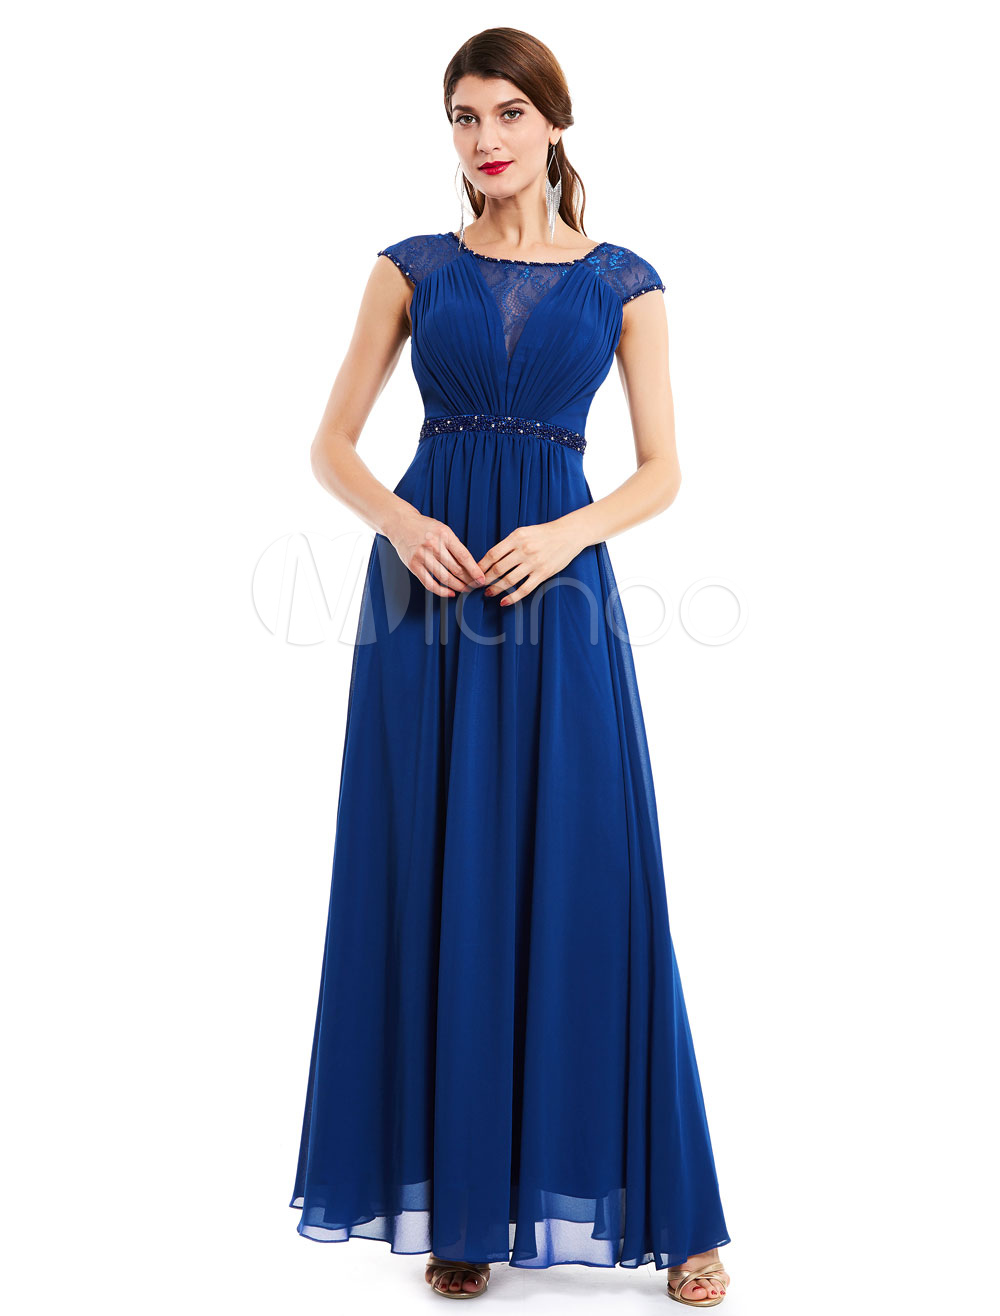 Wedding Guest Dresses Chiffon Royal Blue Mother Dress Beading Sash Floor Length Formal Dress